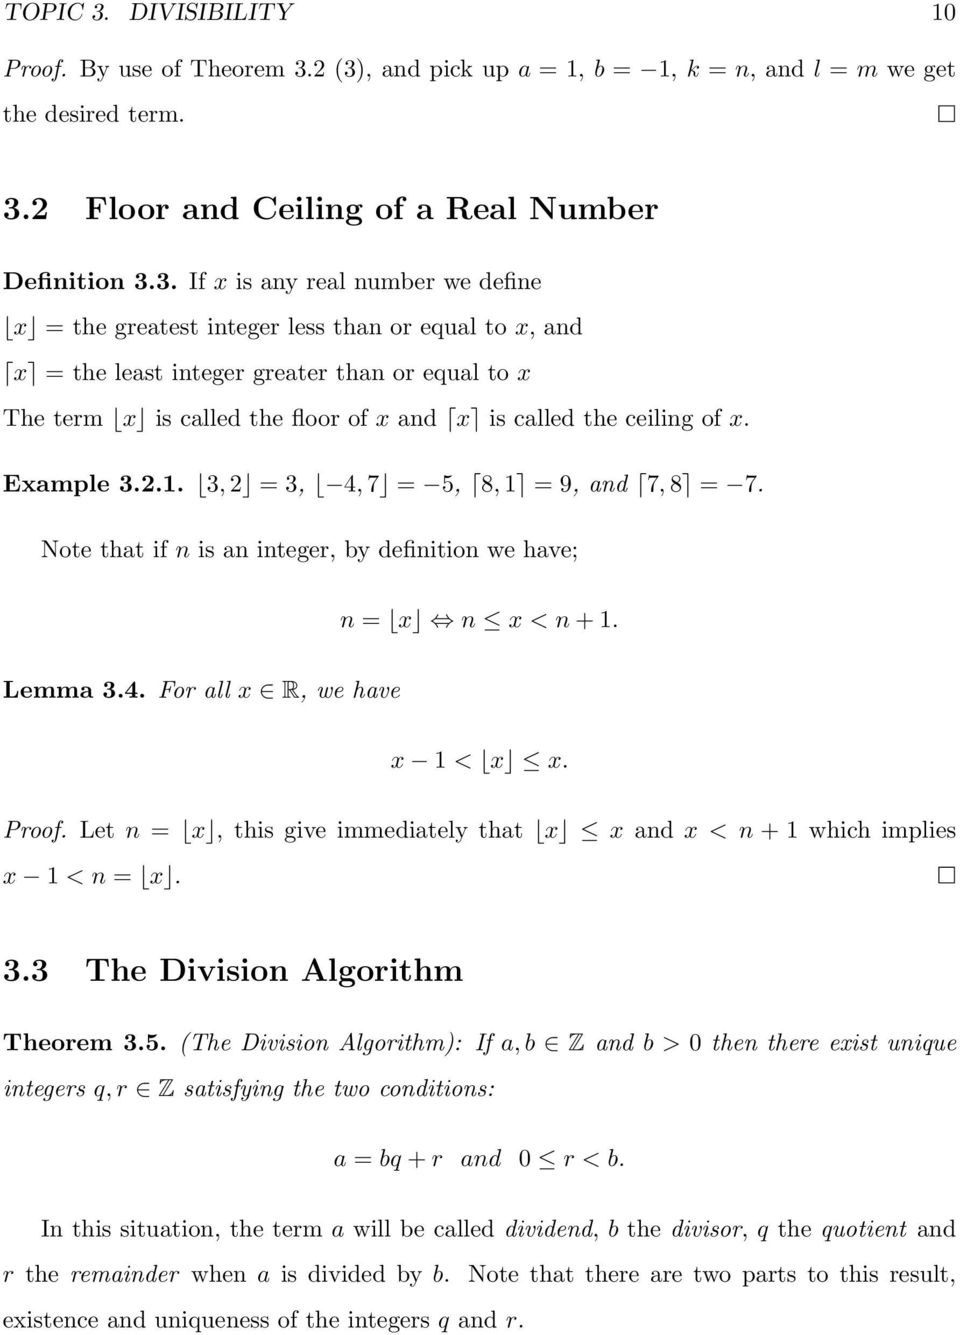 2 (3), and pick up a = 1, b = 1, k = n, and l = m we get the desired term. 3.2 Floor and Ceiling of a Real Number Definition 3.3. If x is any real number we define x = the greatest integer less than